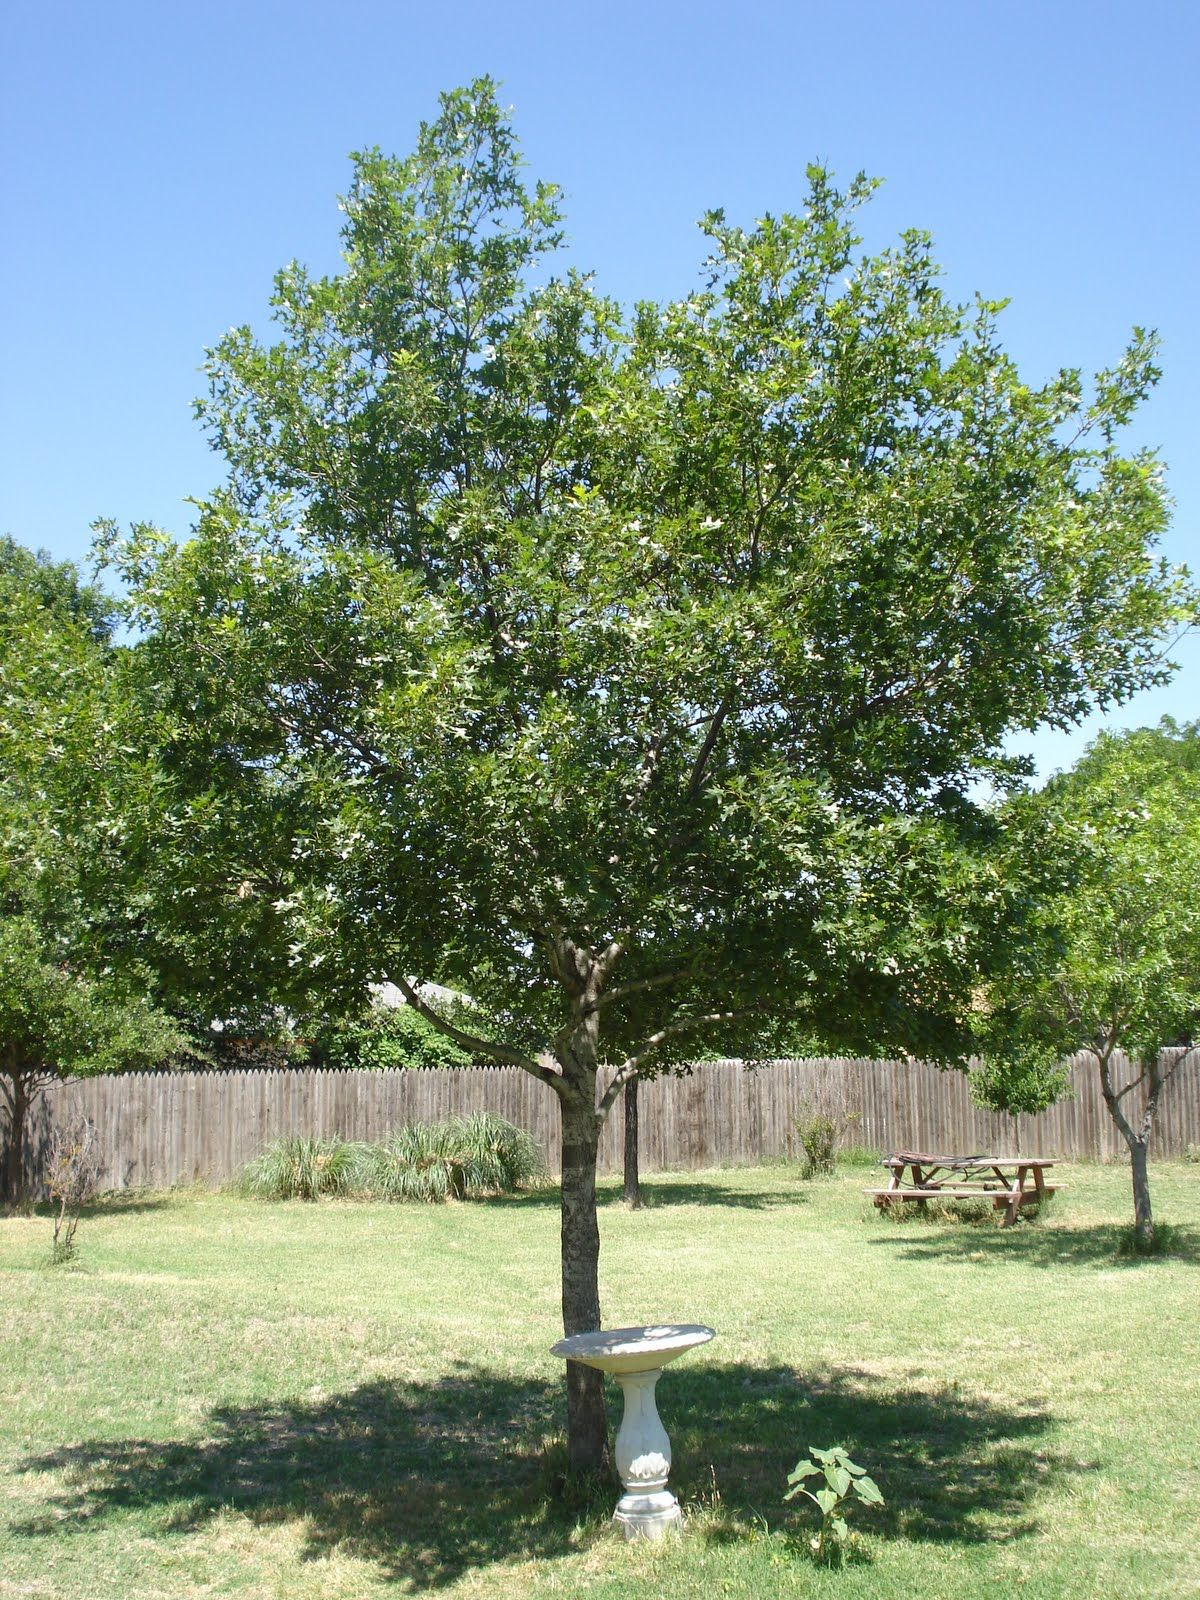 shumard oak - recommended for CO | Gardening | Pinterest | Yards and ...